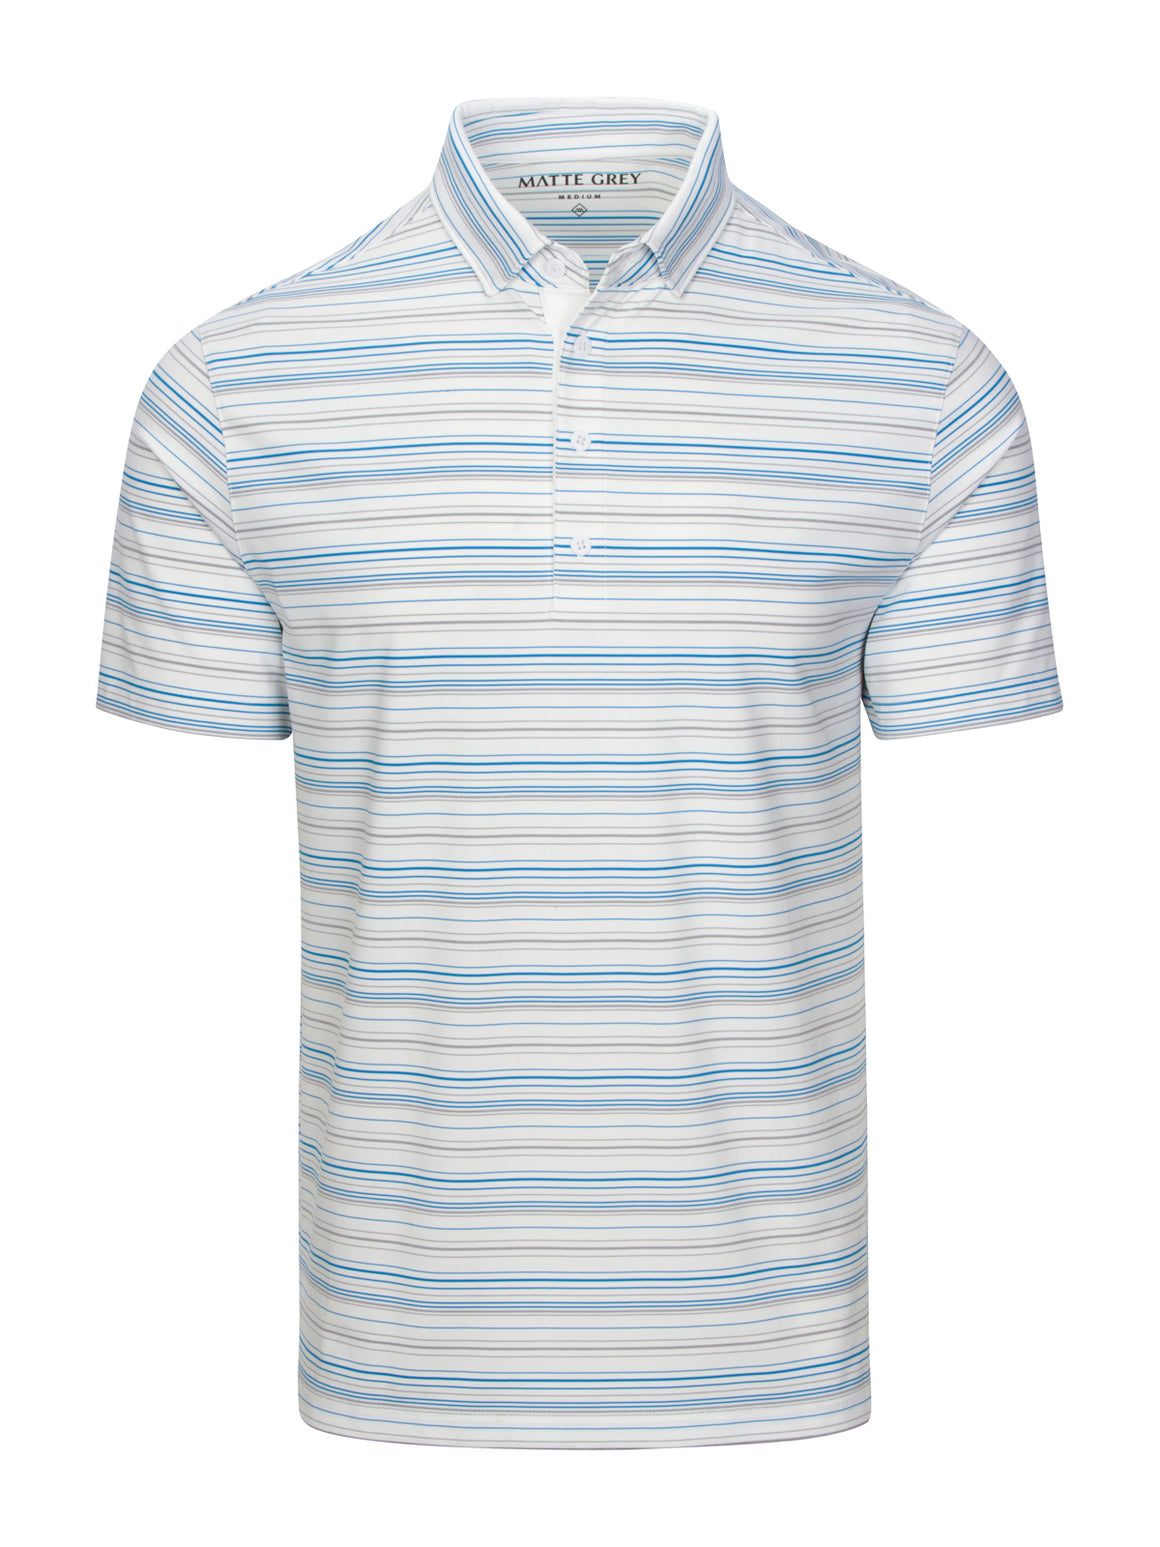 Peters - White (Coastal Blue / Ash Heather)